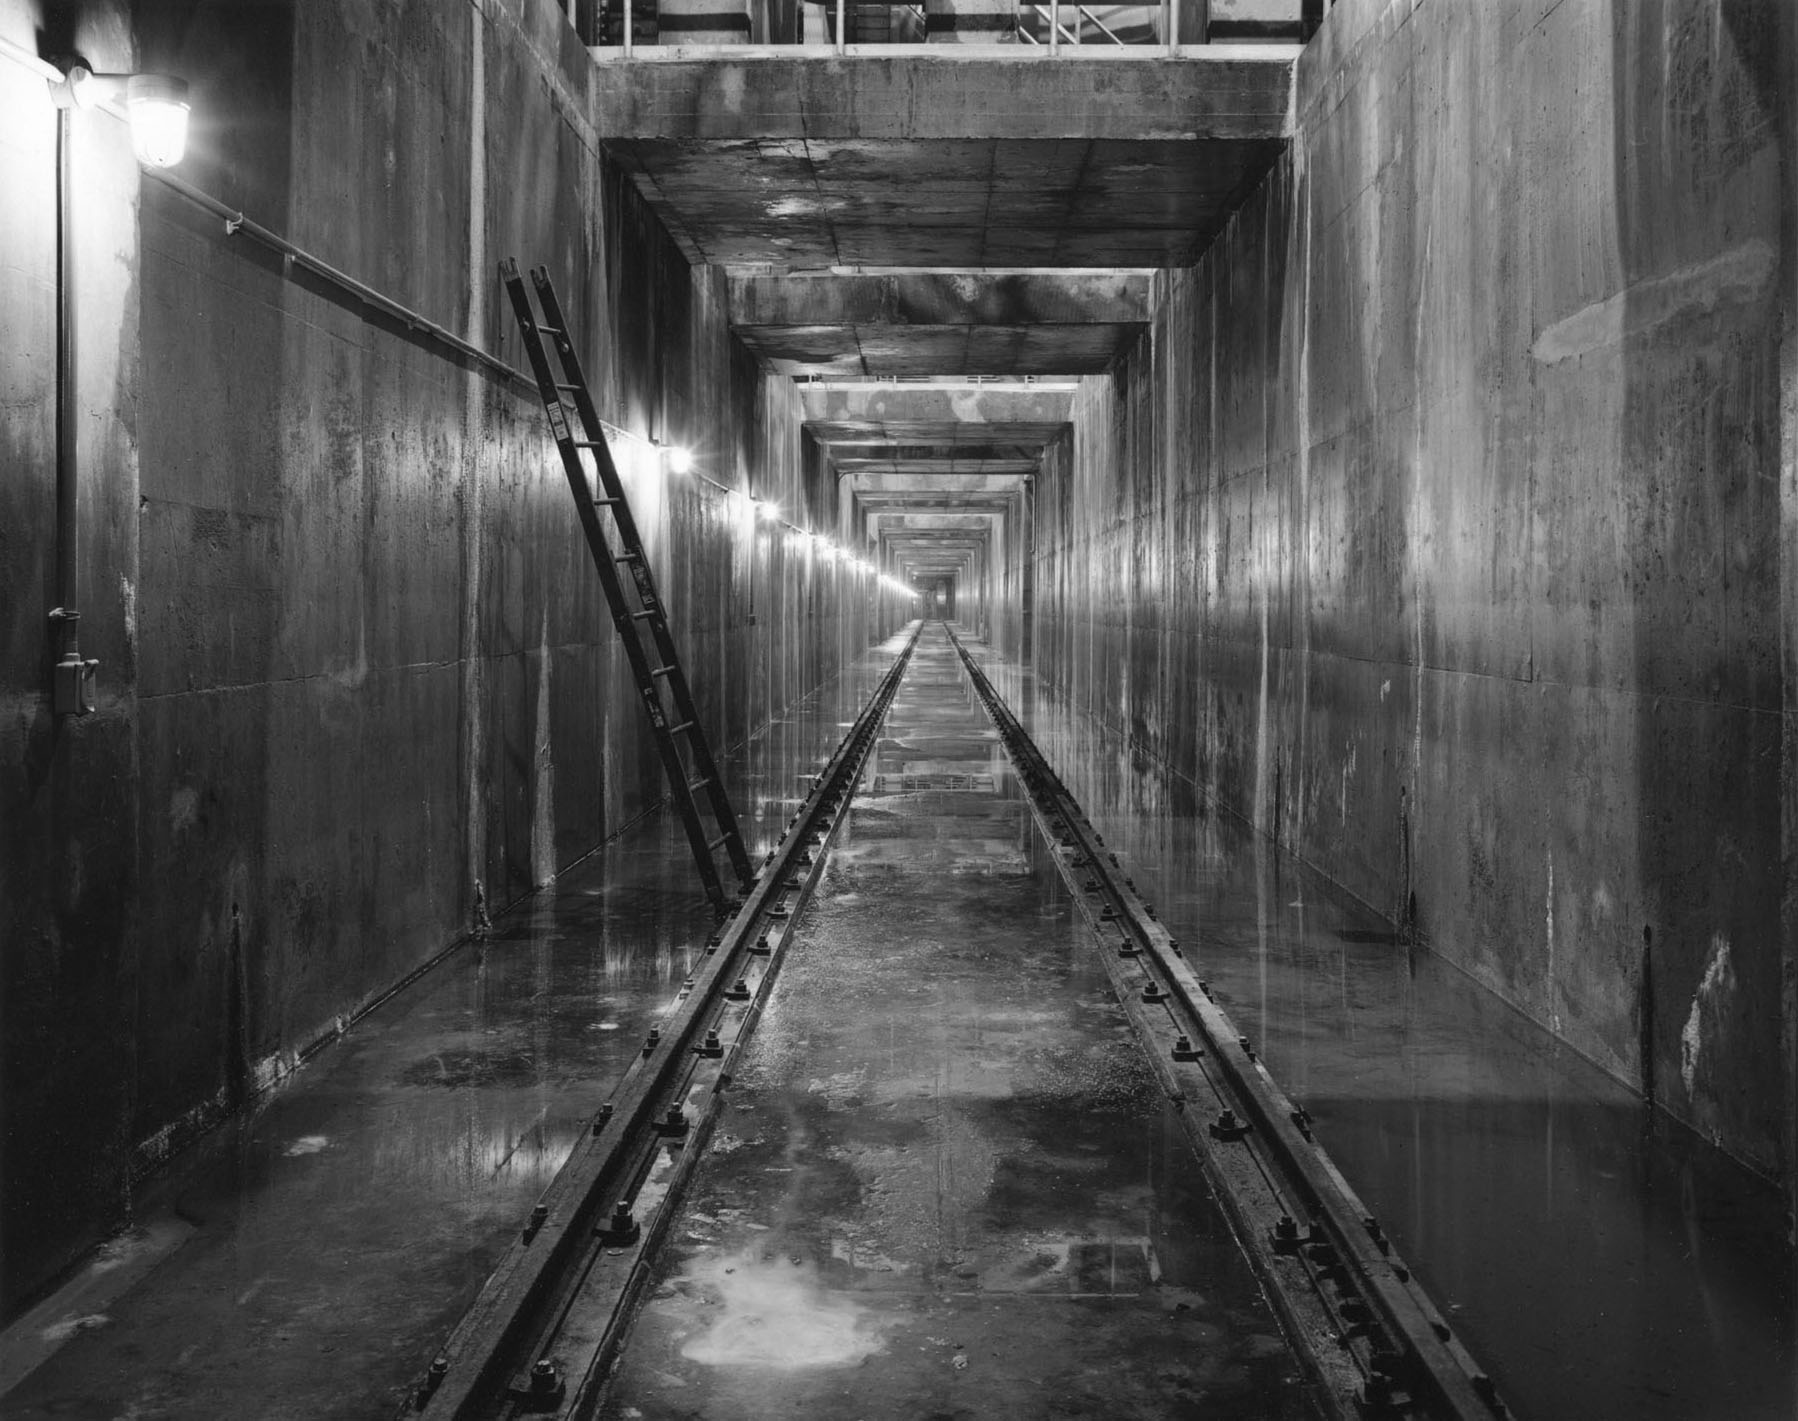 Maintenance Tunnel, Shaft 2b, City Tunnel No. 3, Bronx, New York, 1993